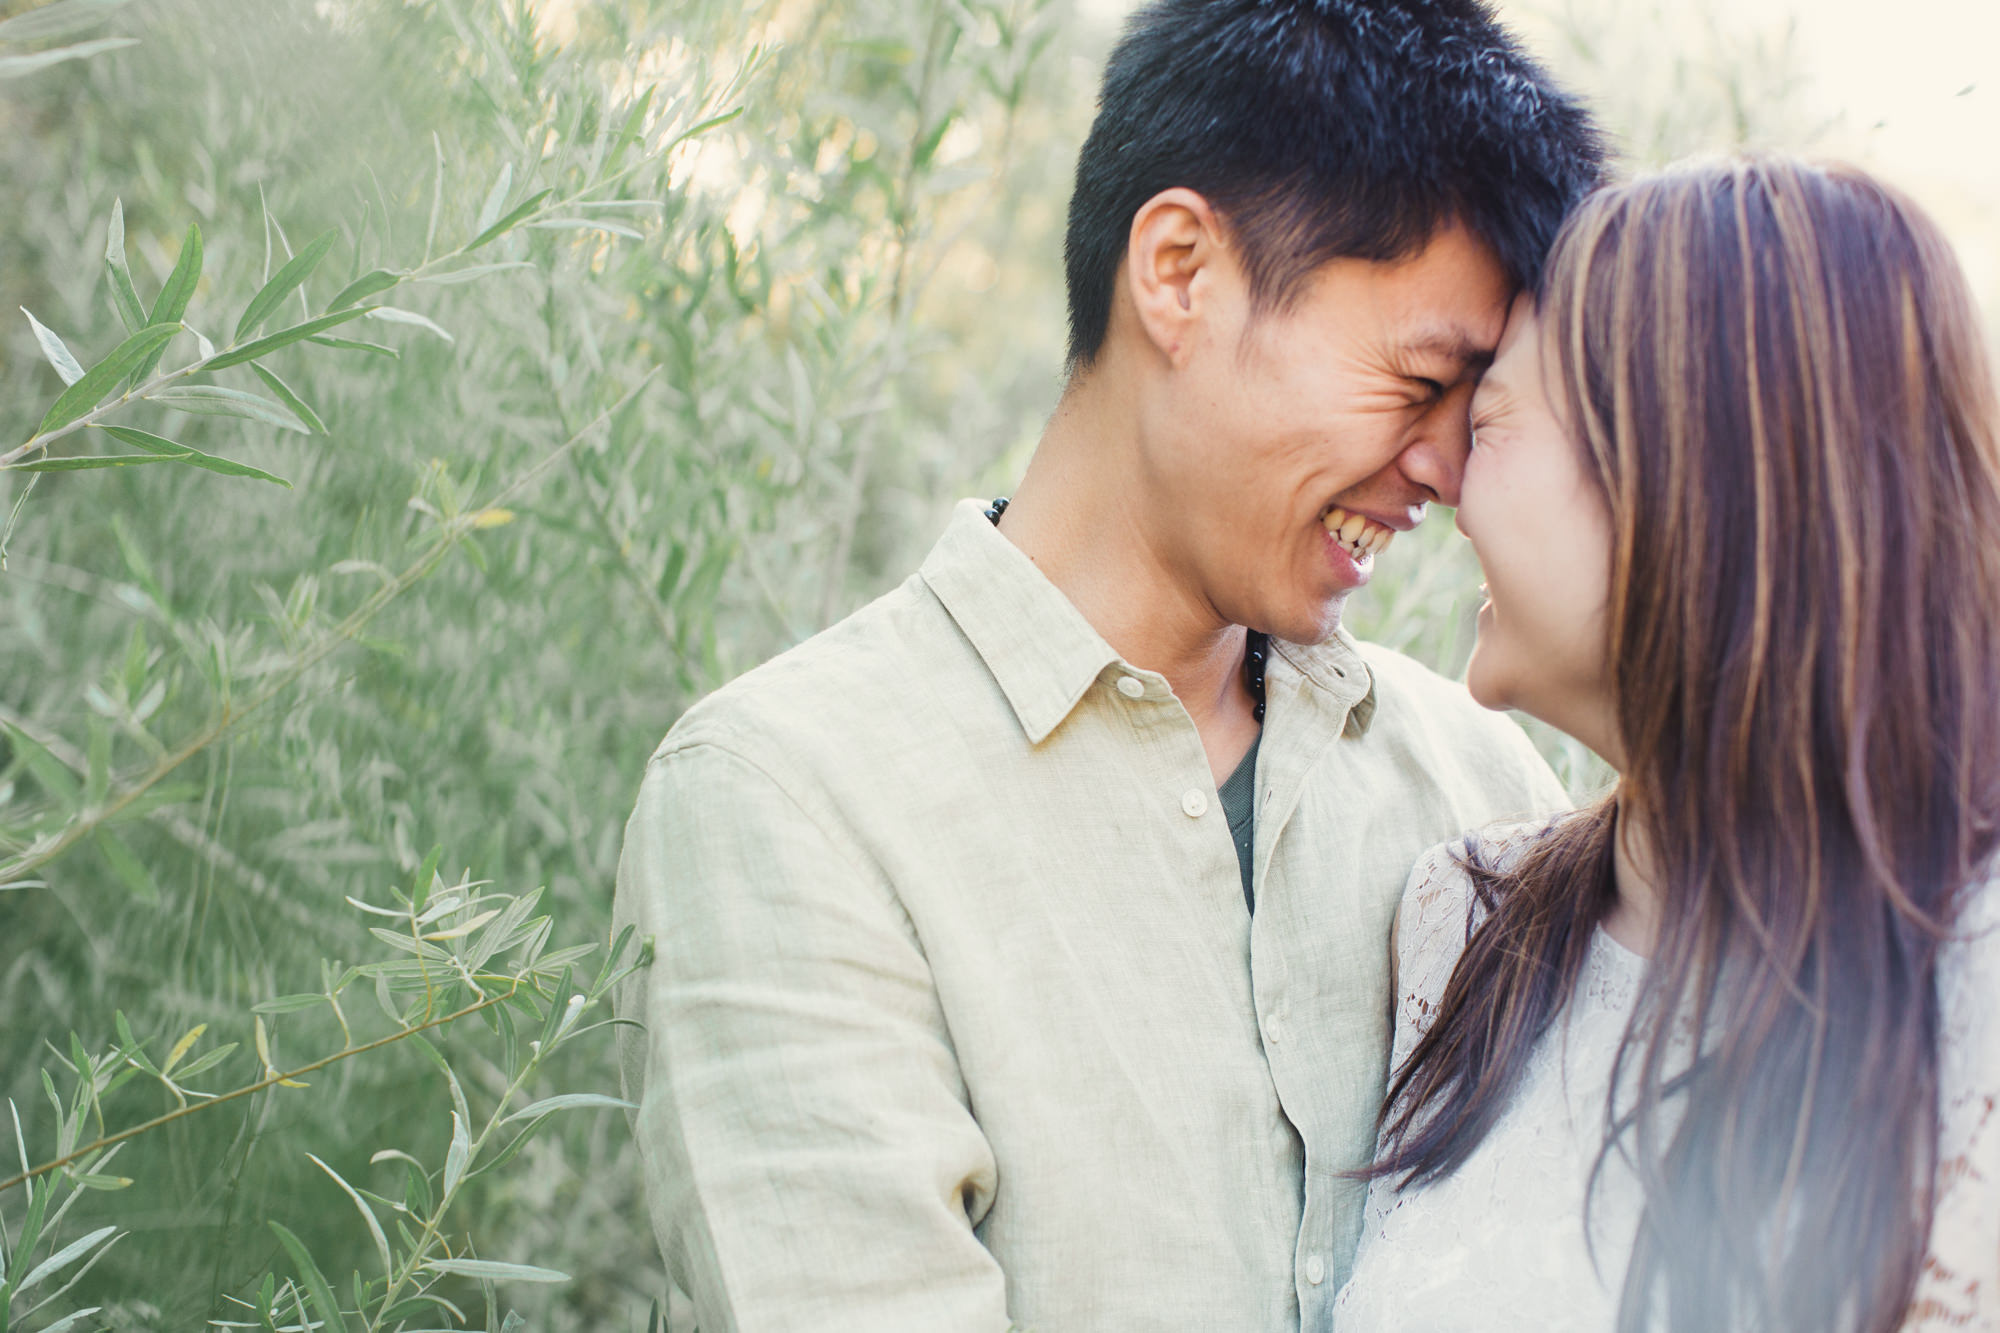 engagement session in Guerneville©Anne-Claire Brun 0013